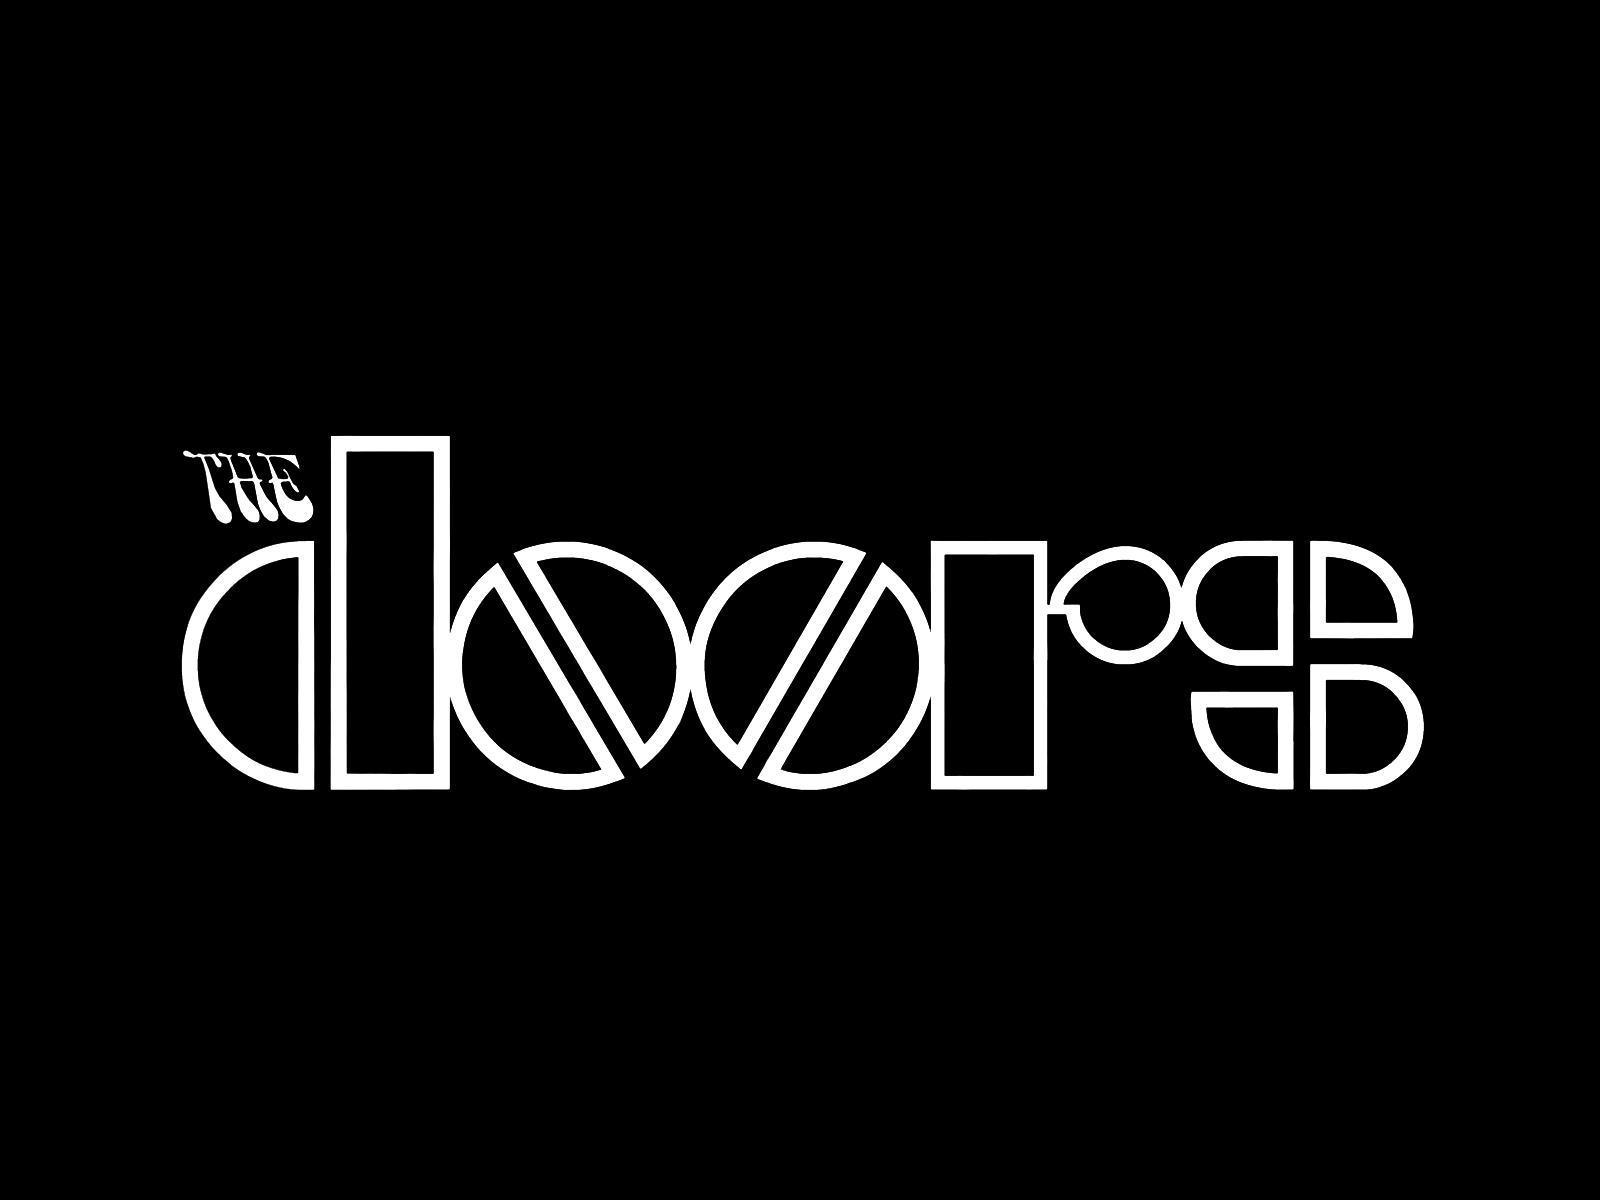 the doors images hd - photo #37